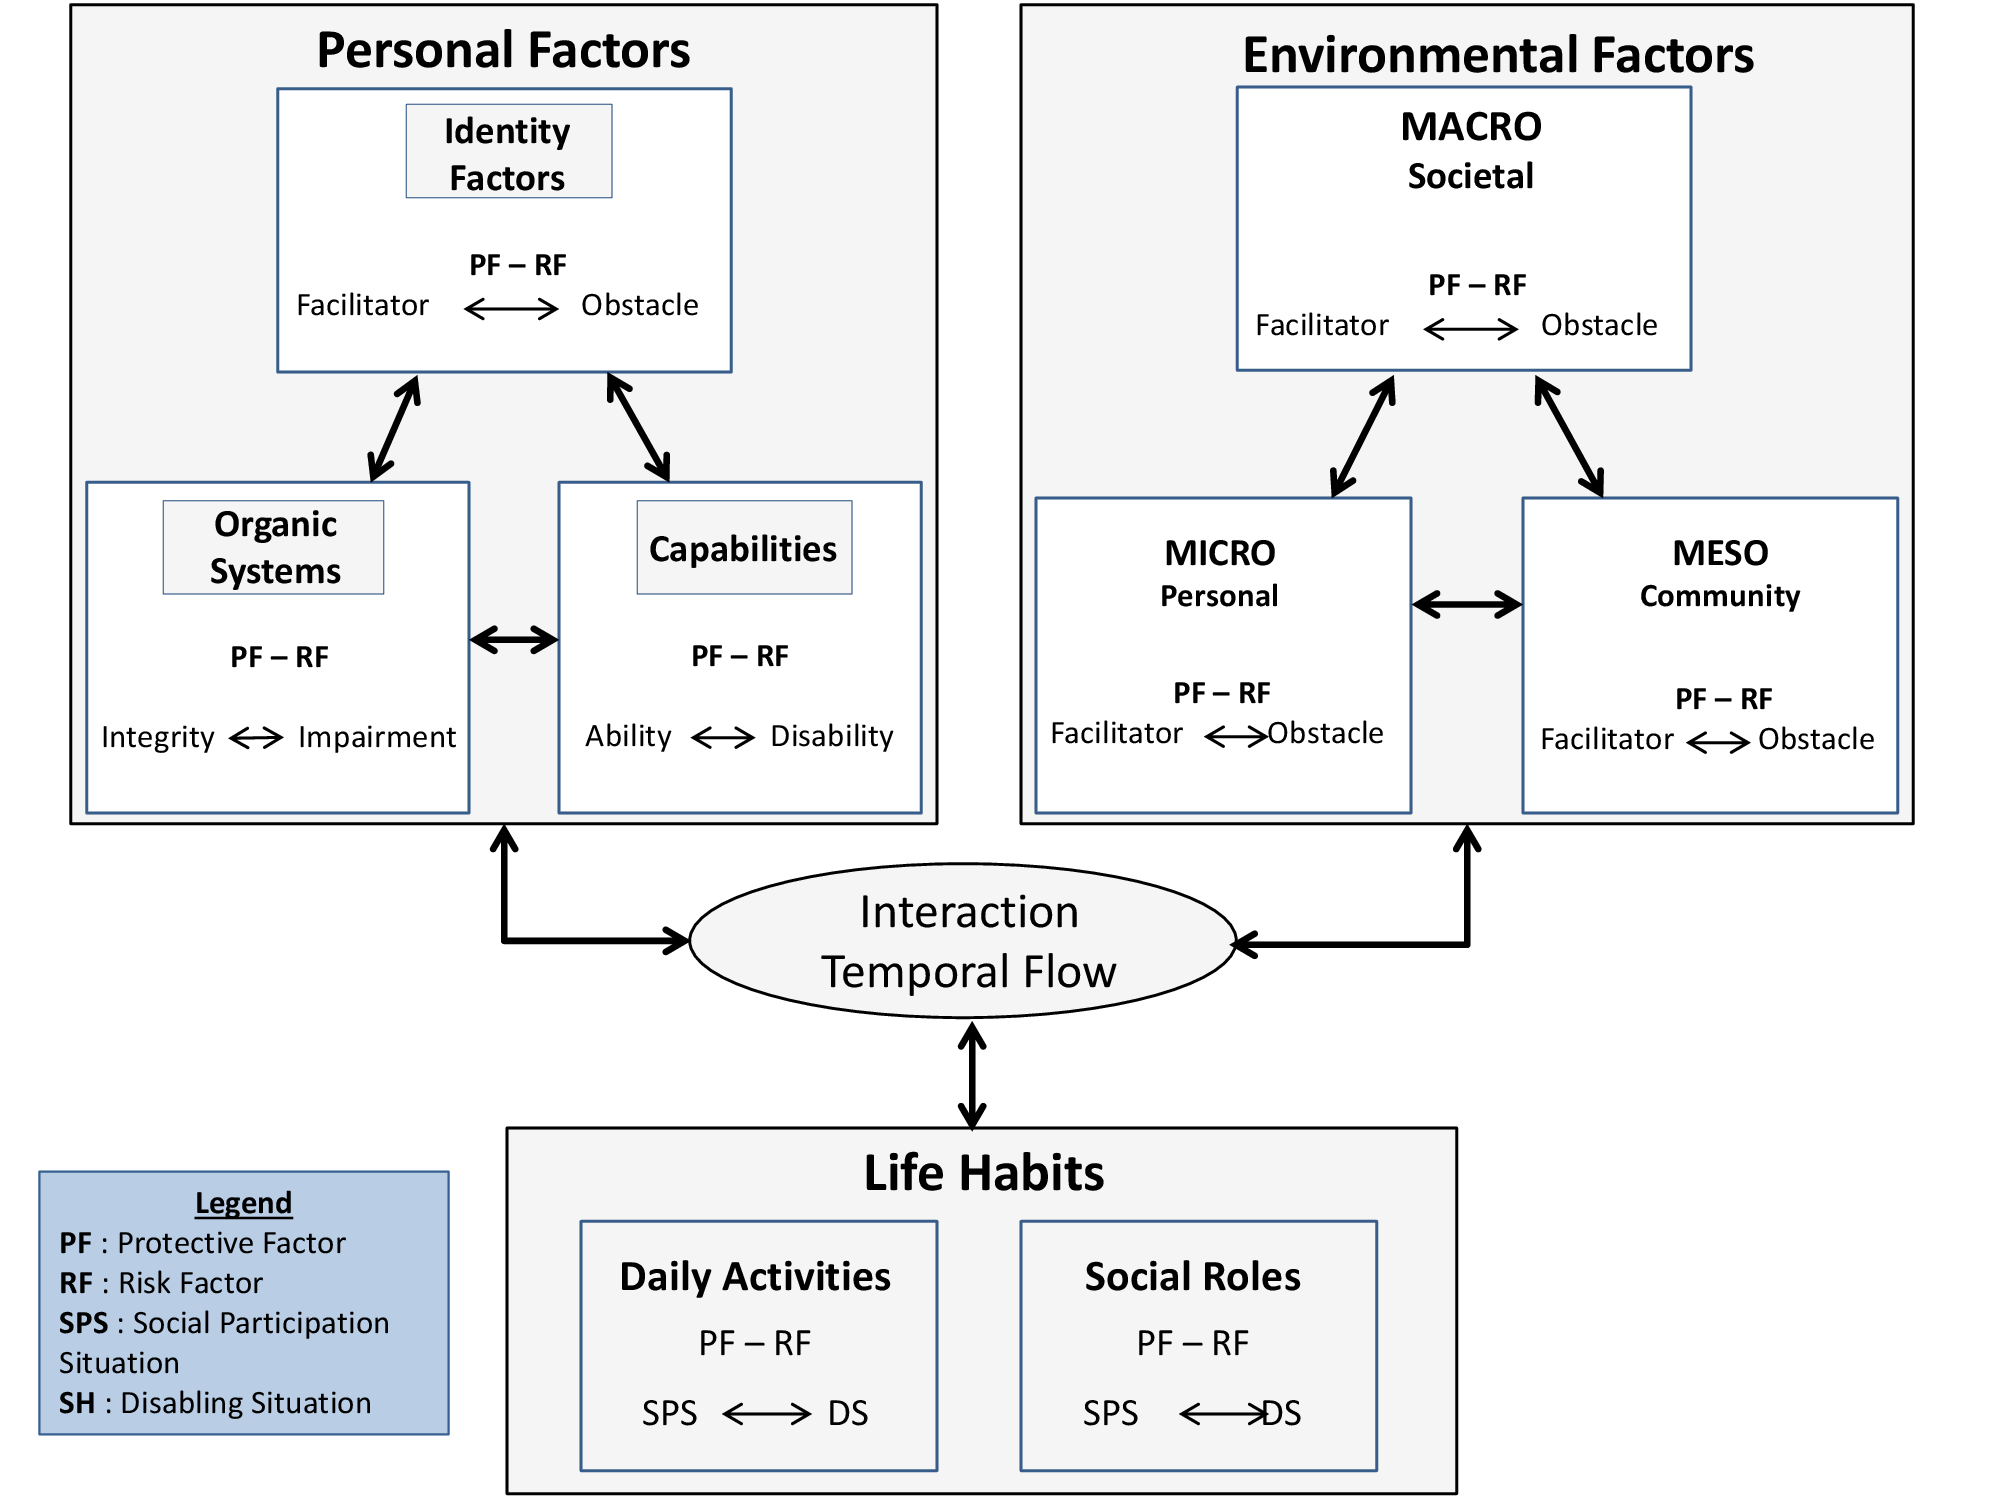 This image is made up of two squares that illustrate personal factors and environmental factors as well as a rectangle at the bottom of the image that illustrates the life habits found in the DCP model. The relationships between its forms are indicated by arrows that go in both directions.